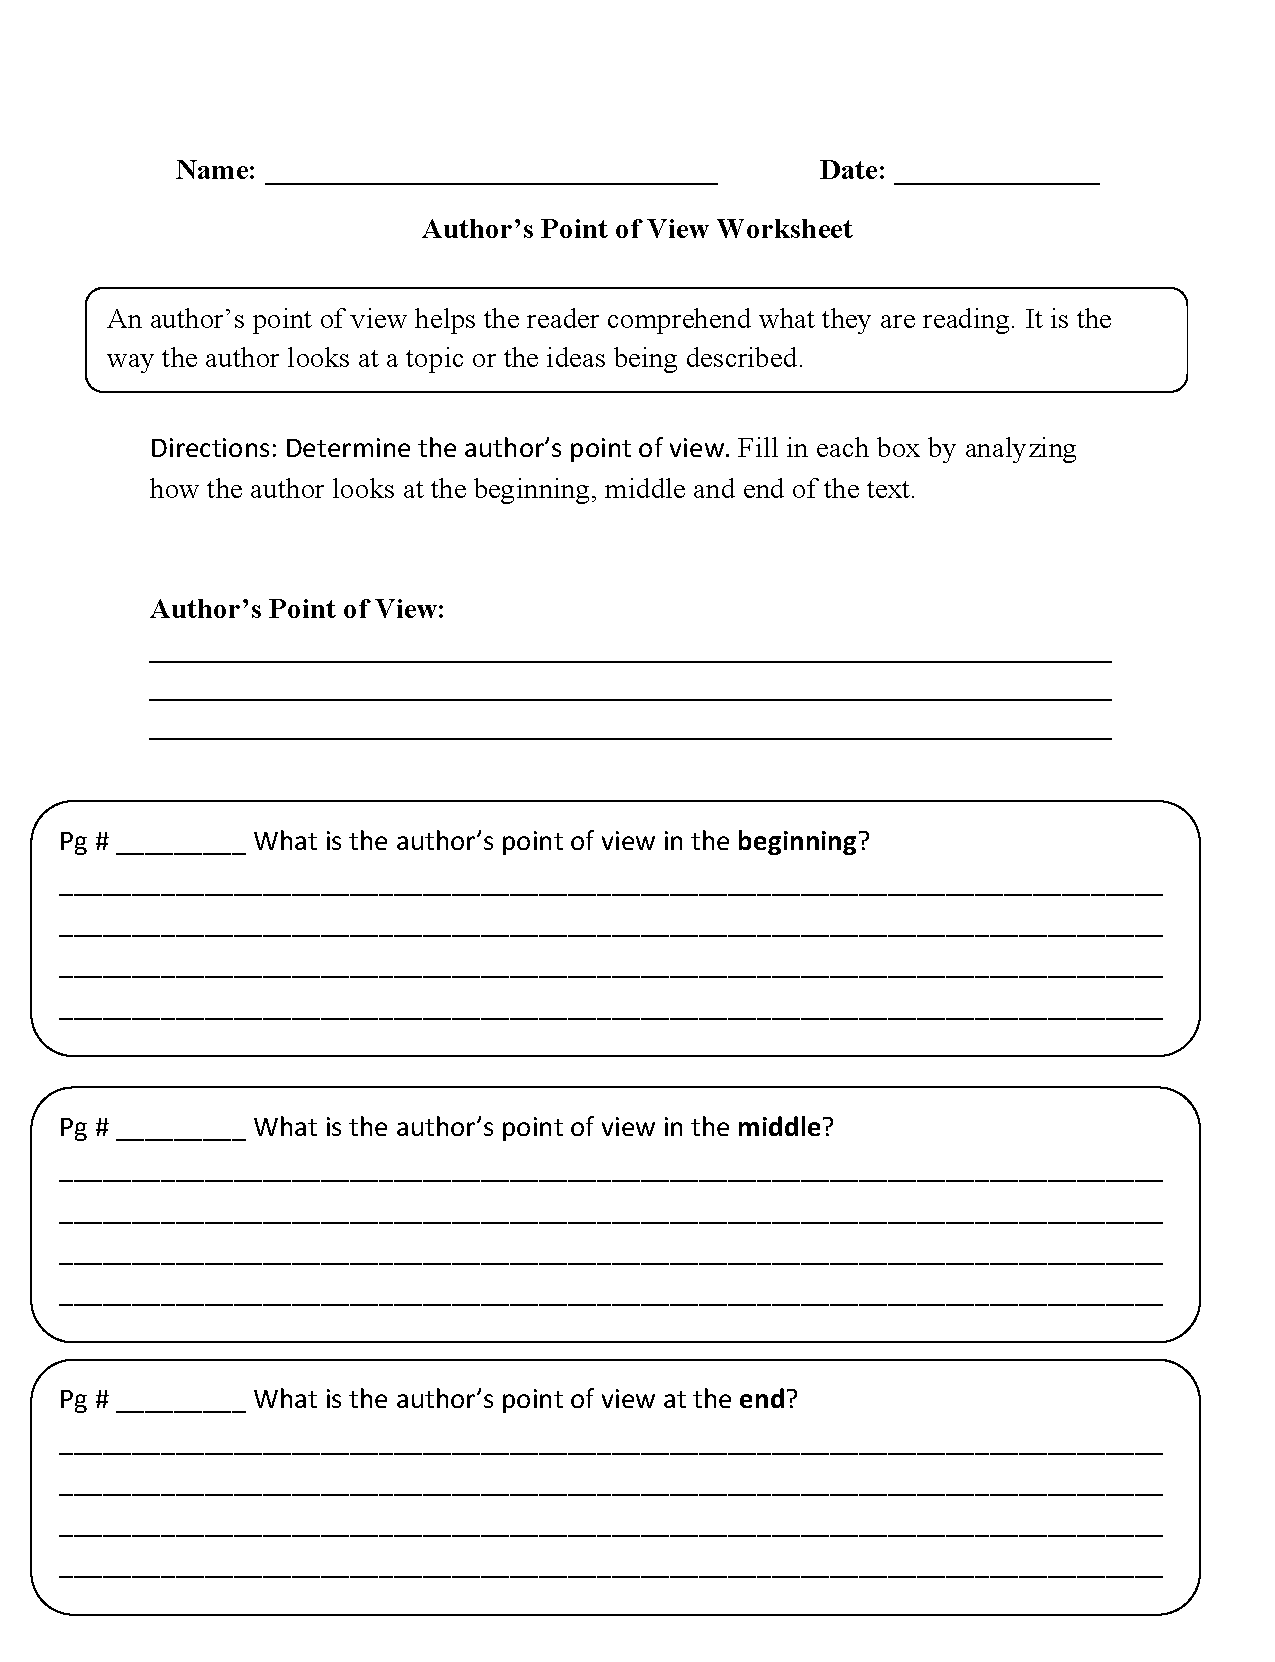 Weirdmailus  Fascinating Englishlinxcom  Point Of View Worksheets With Remarkable Point Of View Worksheets With Extraordinary Nomenclature Worksheet  Covalent Molecular Compounds Also Interior And Exterior Angles Of Polygons Worksheet In Addition Th Grade Spelling Worksheets And Byron Katie Worksheets As Well As Nd Grade Multiplication Worksheets Additionally Water Cycle Worksheet Pdf From Englishlinxcom With Weirdmailus  Remarkable Englishlinxcom  Point Of View Worksheets With Extraordinary Point Of View Worksheets And Fascinating Nomenclature Worksheet  Covalent Molecular Compounds Also Interior And Exterior Angles Of Polygons Worksheet In Addition Th Grade Spelling Worksheets From Englishlinxcom